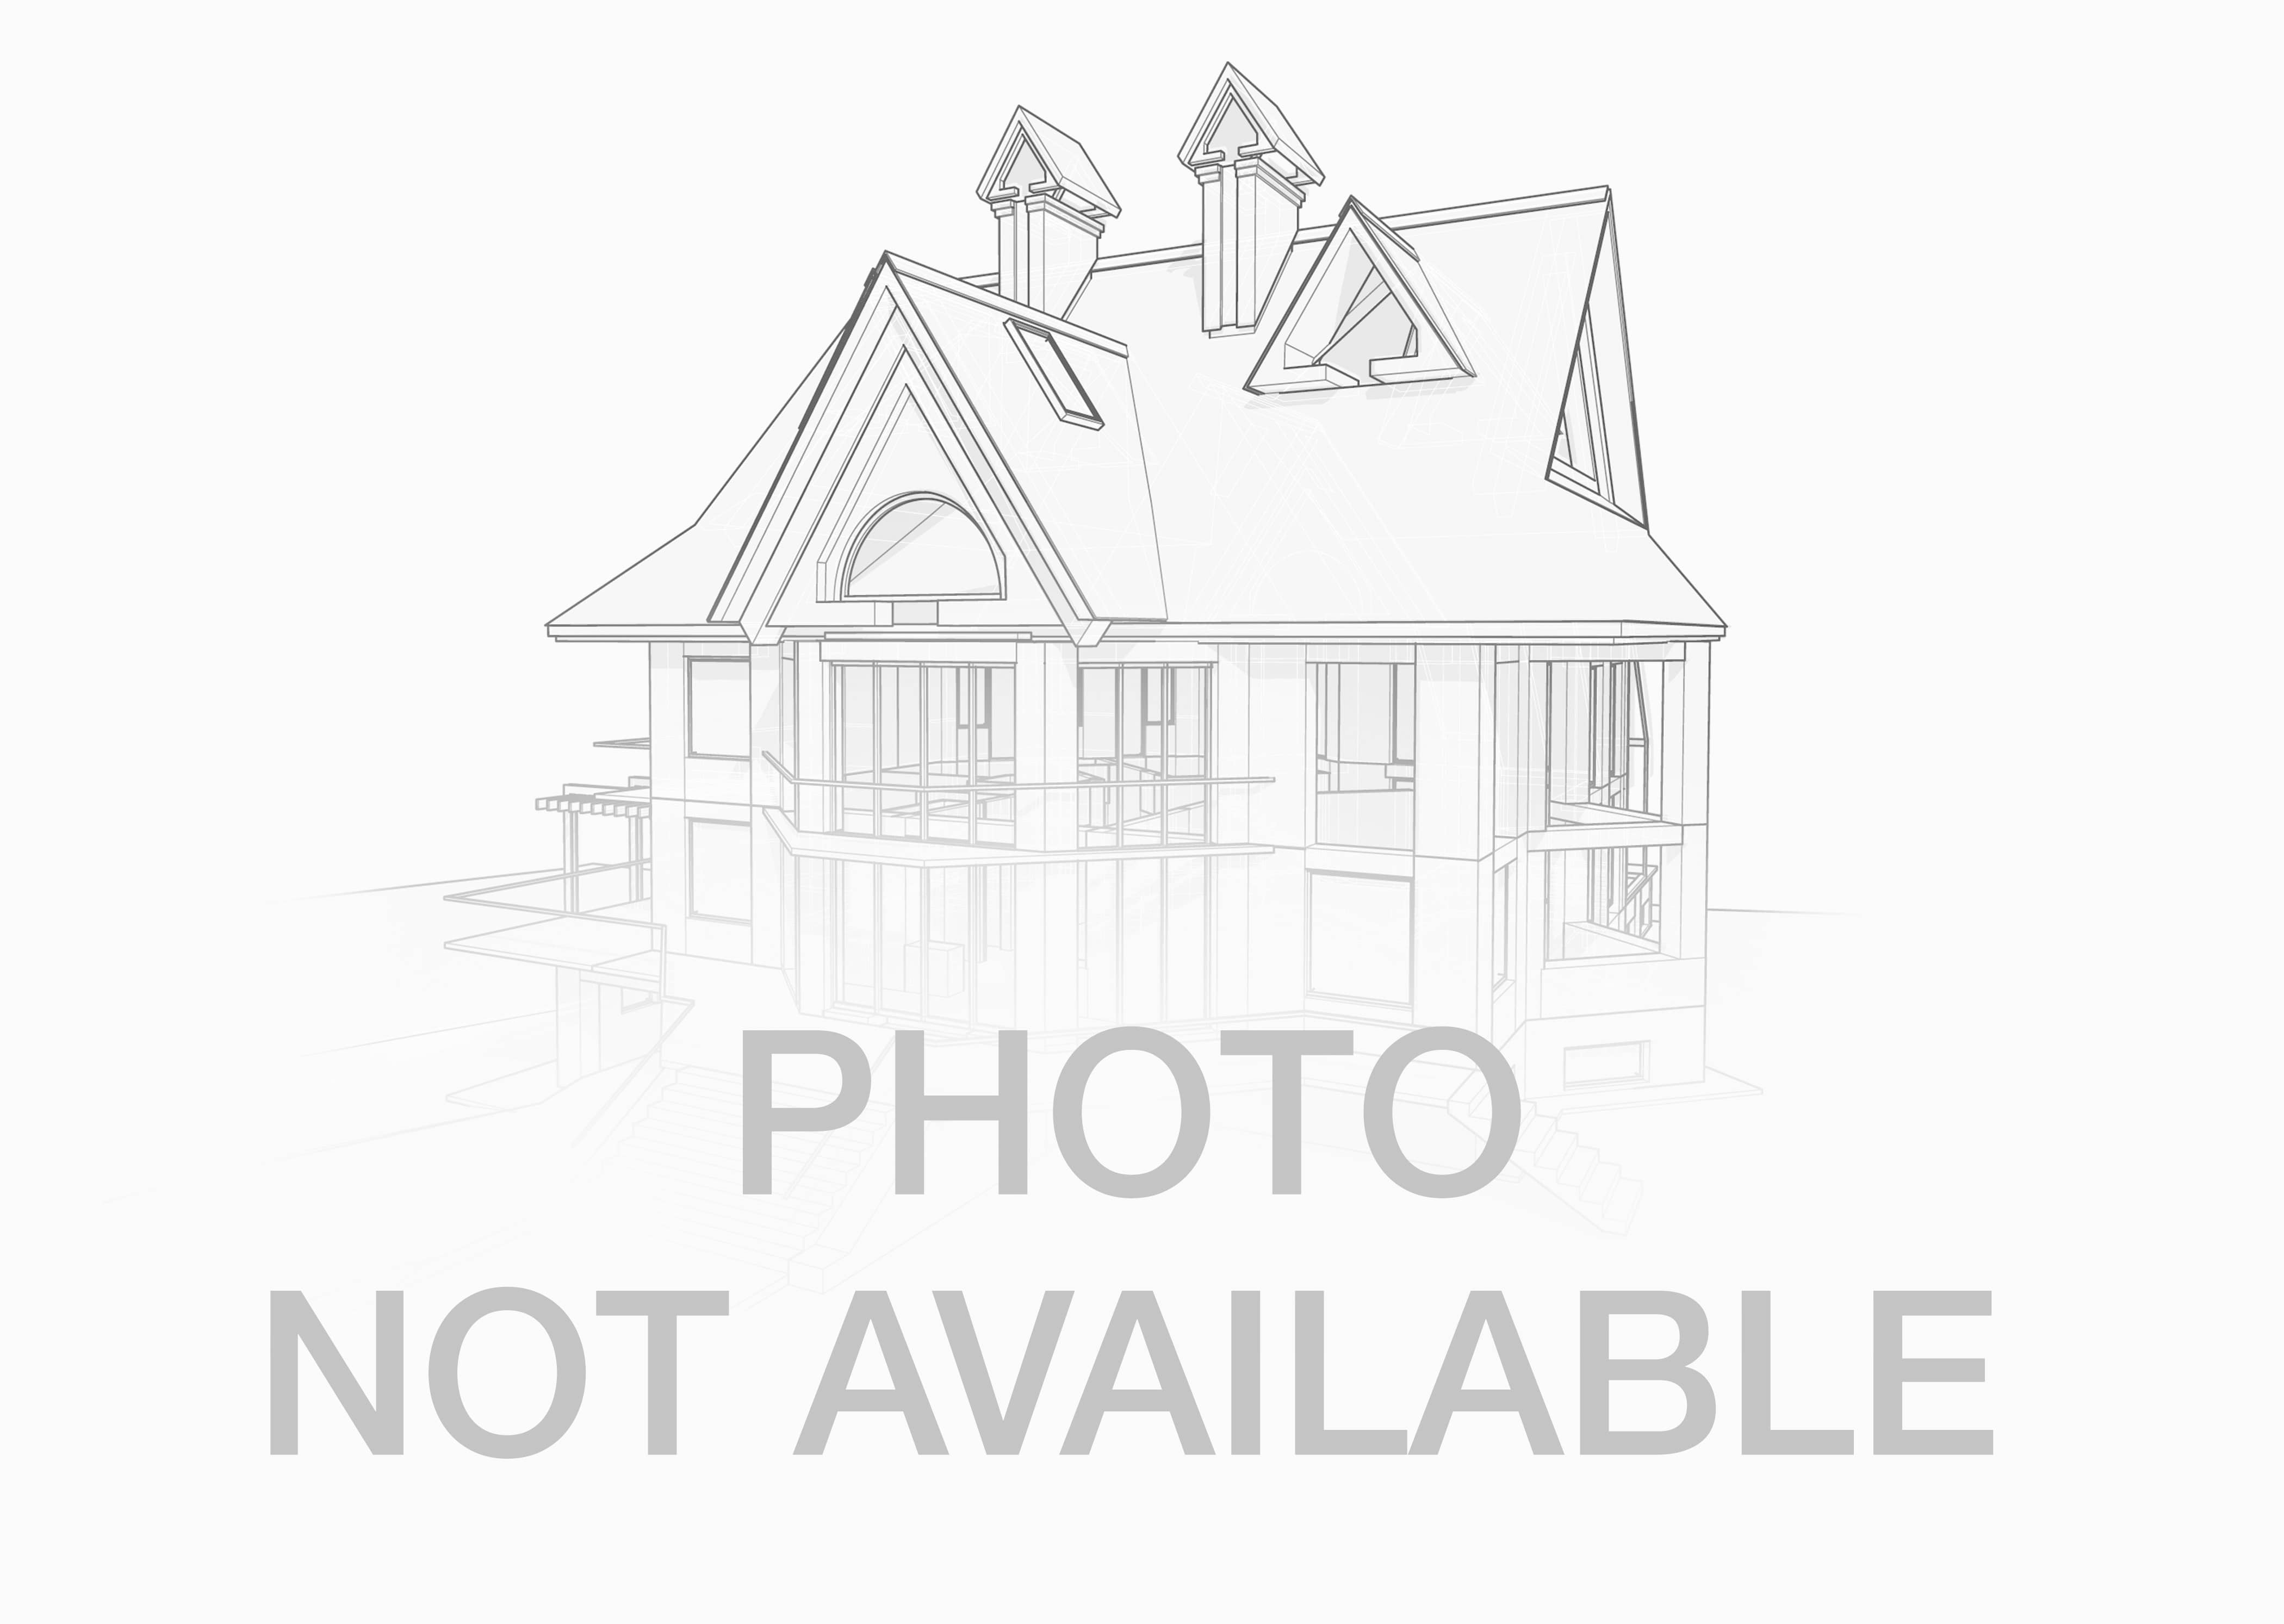 Property For Sale In Silver Spring Maryland